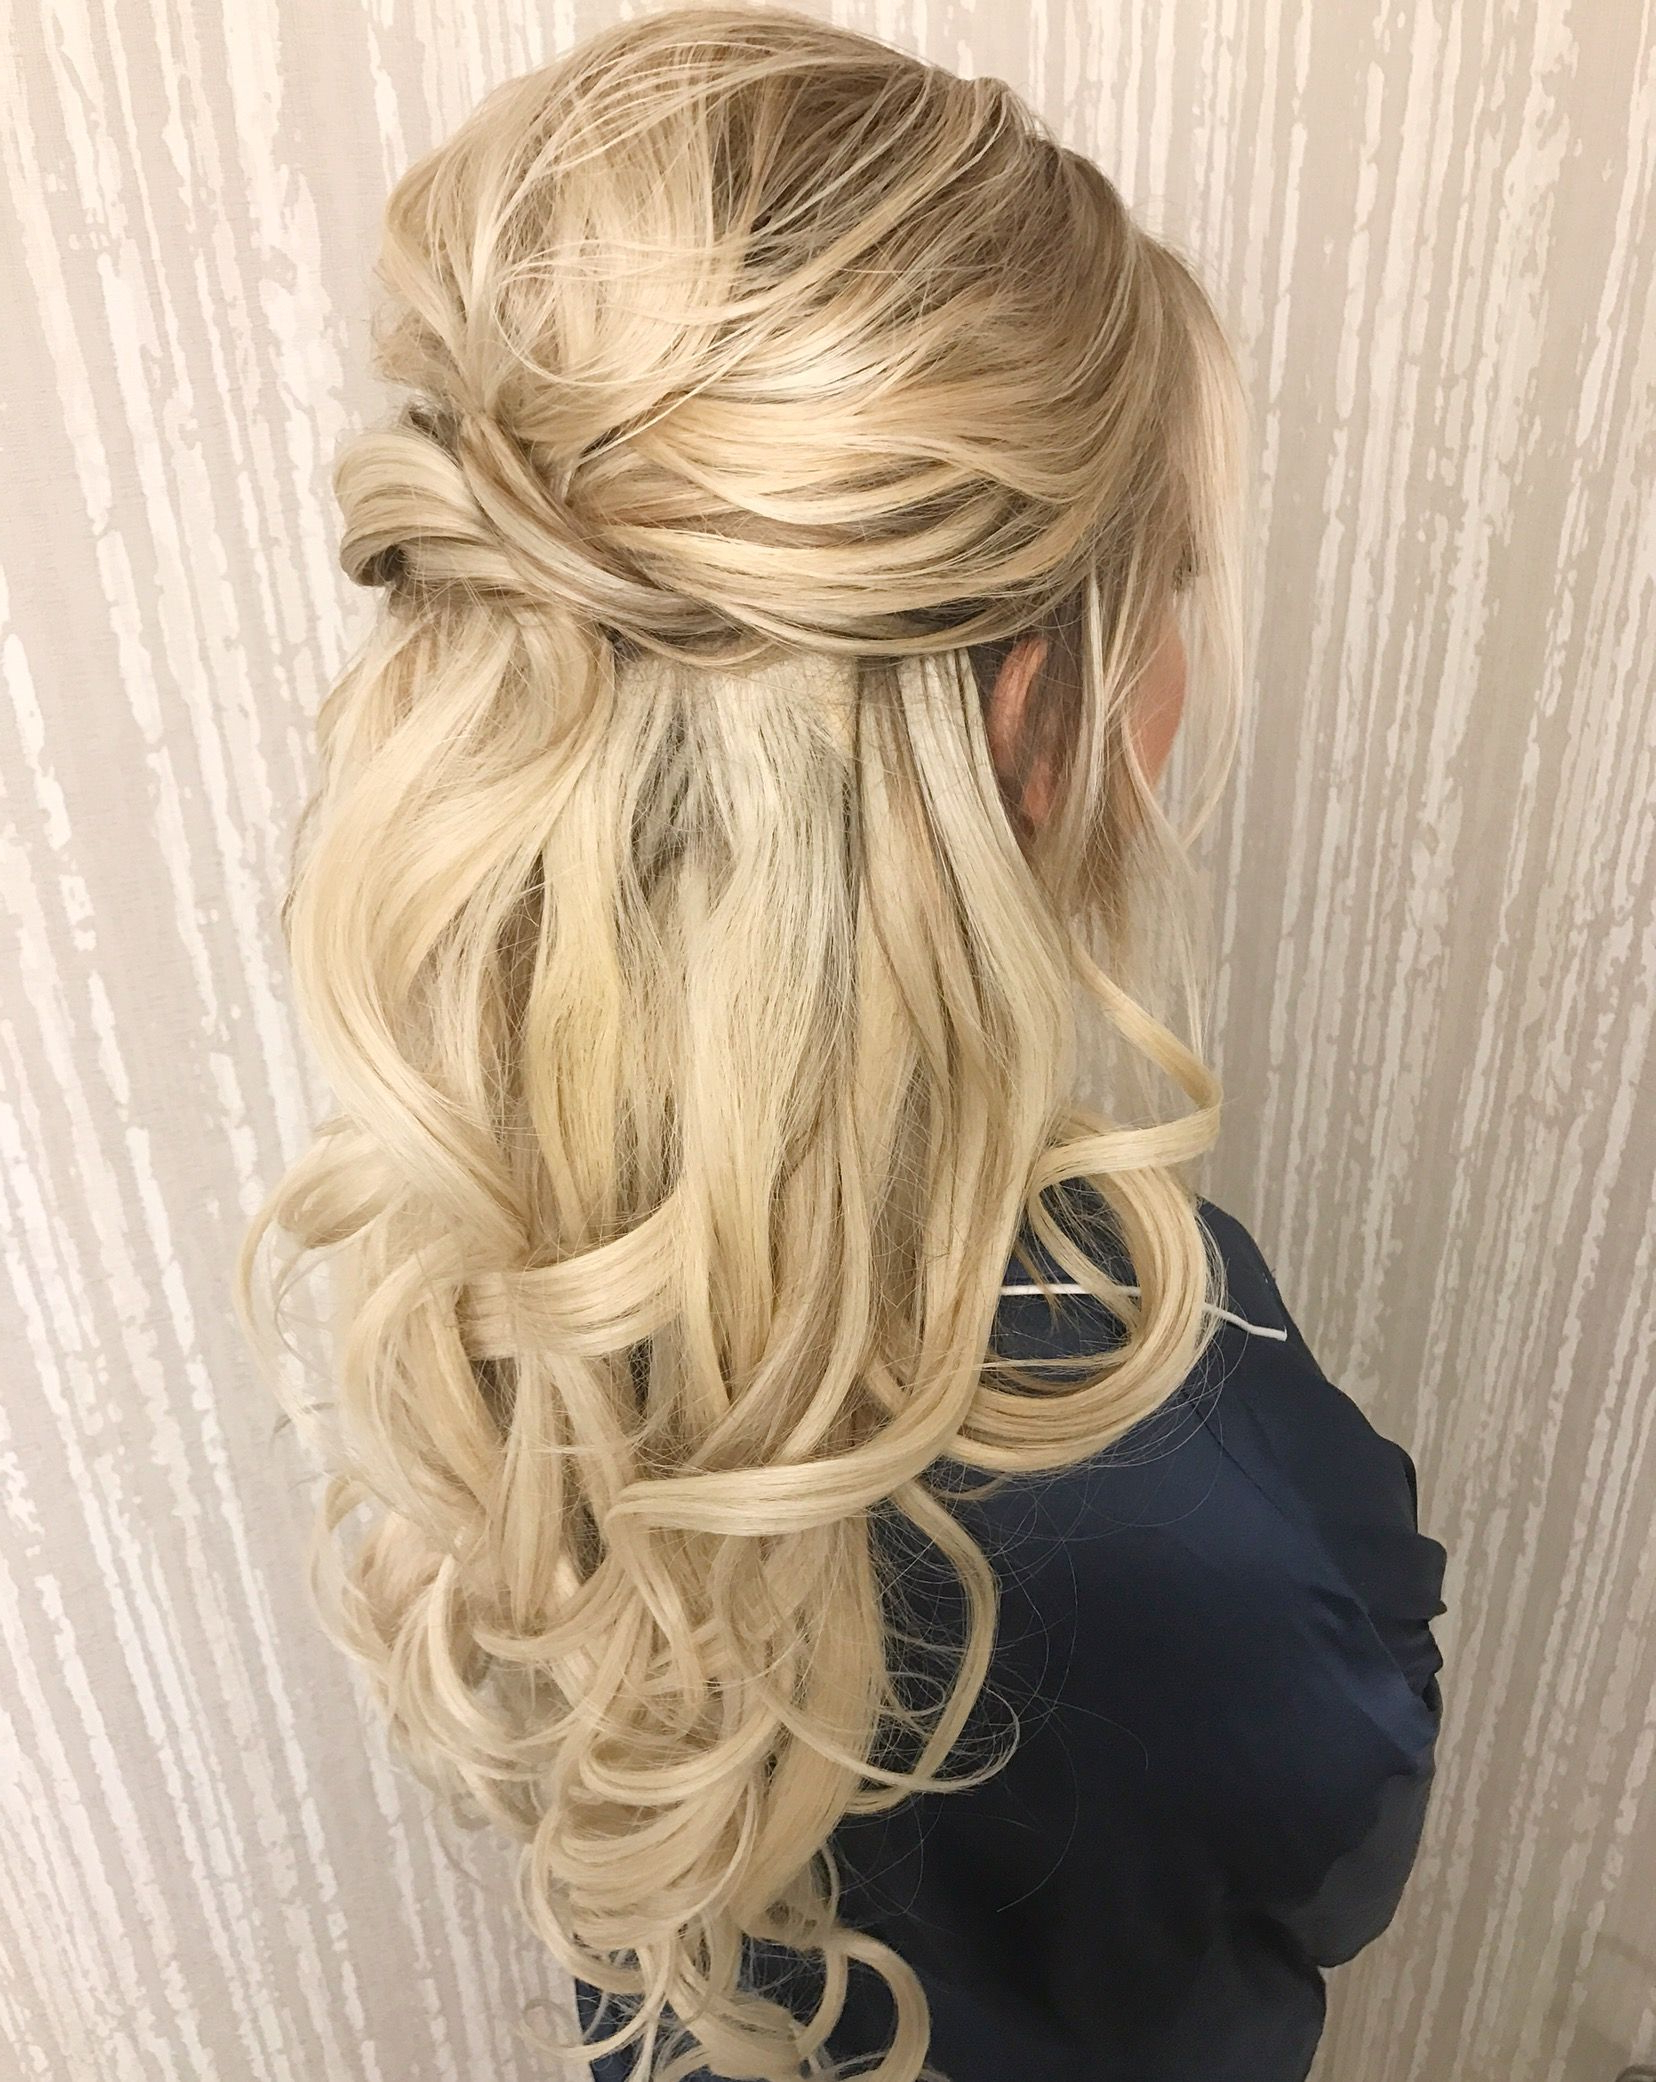 Hair Style Ideas (View 7 of 20)